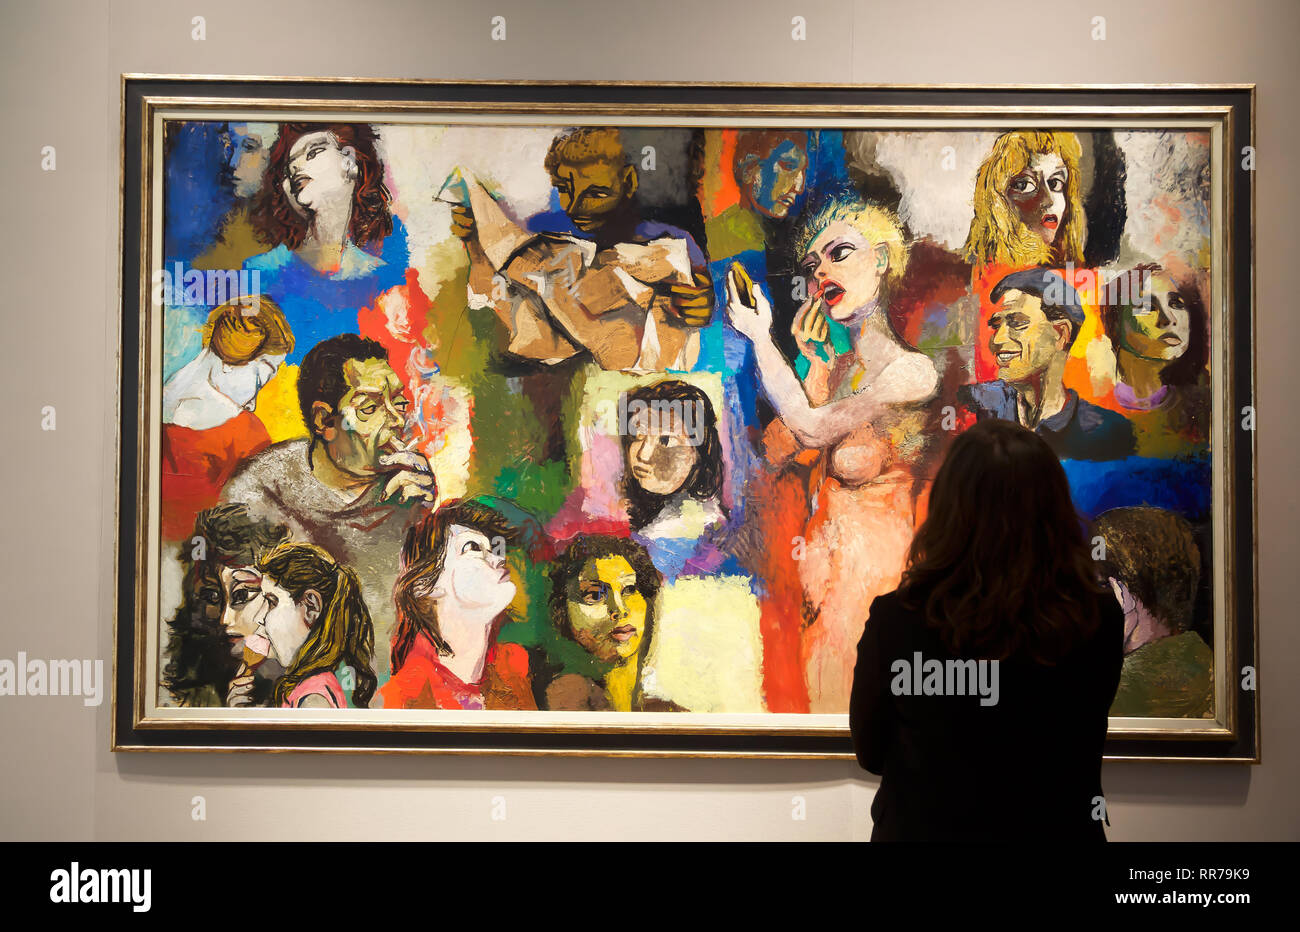 London,UK,25th February 2019,Bonhams photocall: on display: RENATO GUTTUSO(1912-1987)Mosaico di figure. Estimated at £ 60,000 - 80,000 The sale takes place on the 28th February at 5pm.Credit Keith Larby/Alamy Live News Stock Photo